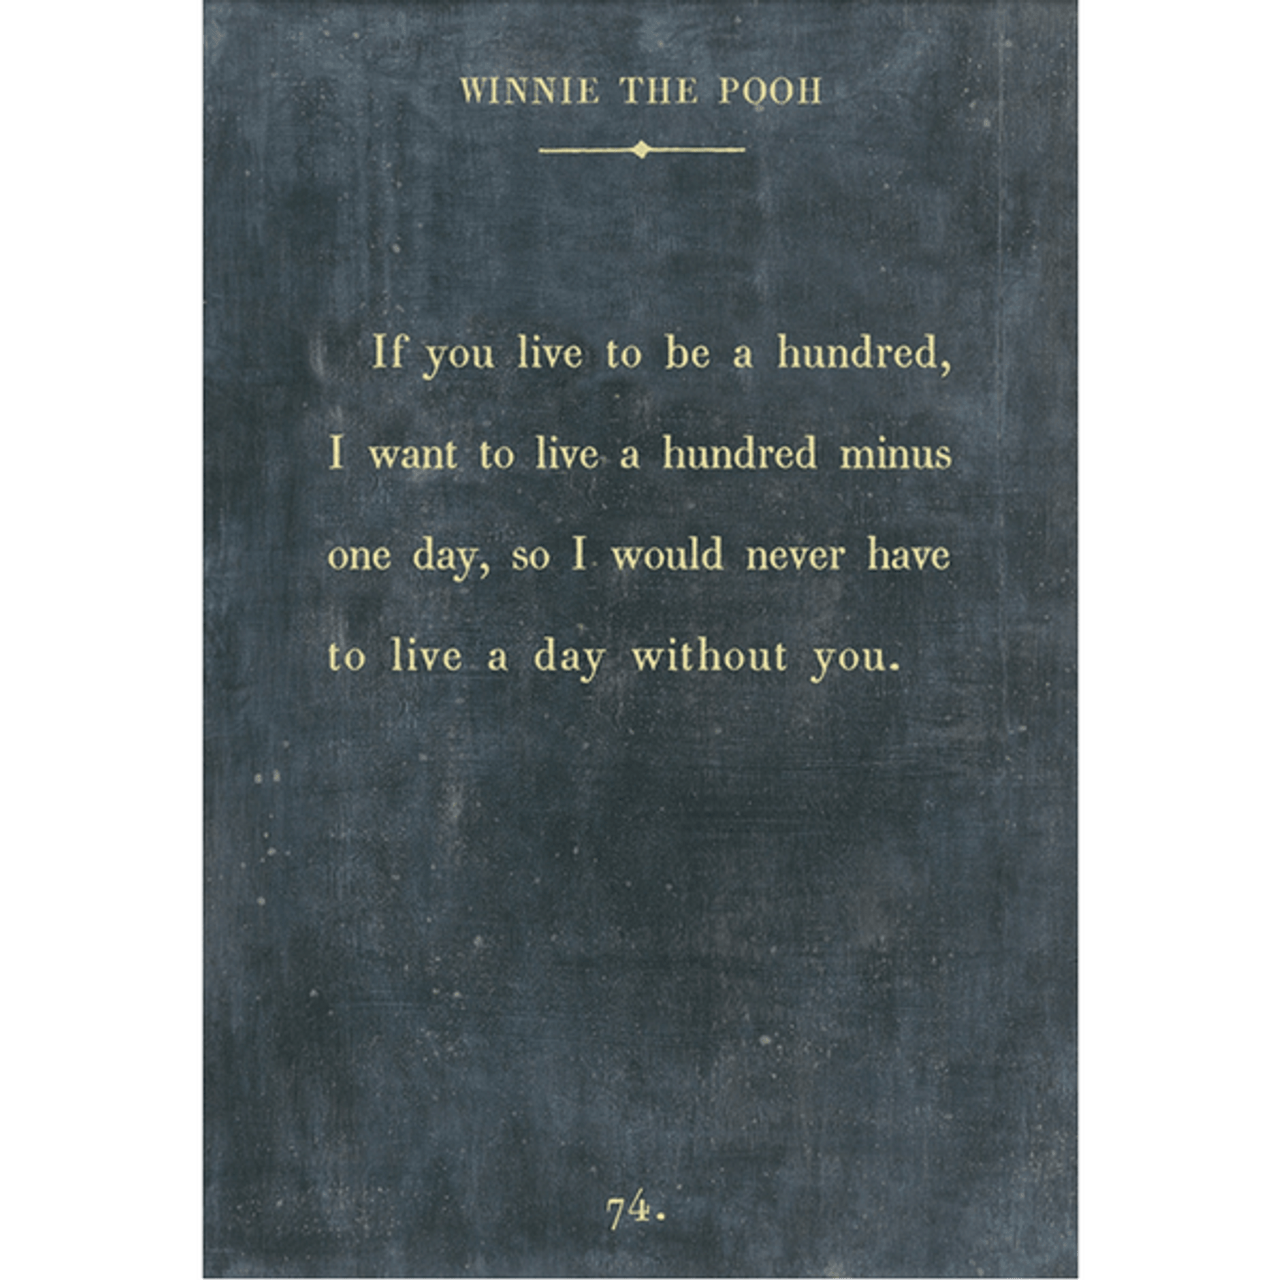 winnie the pooh art print - charcoal with gallery wrap frame